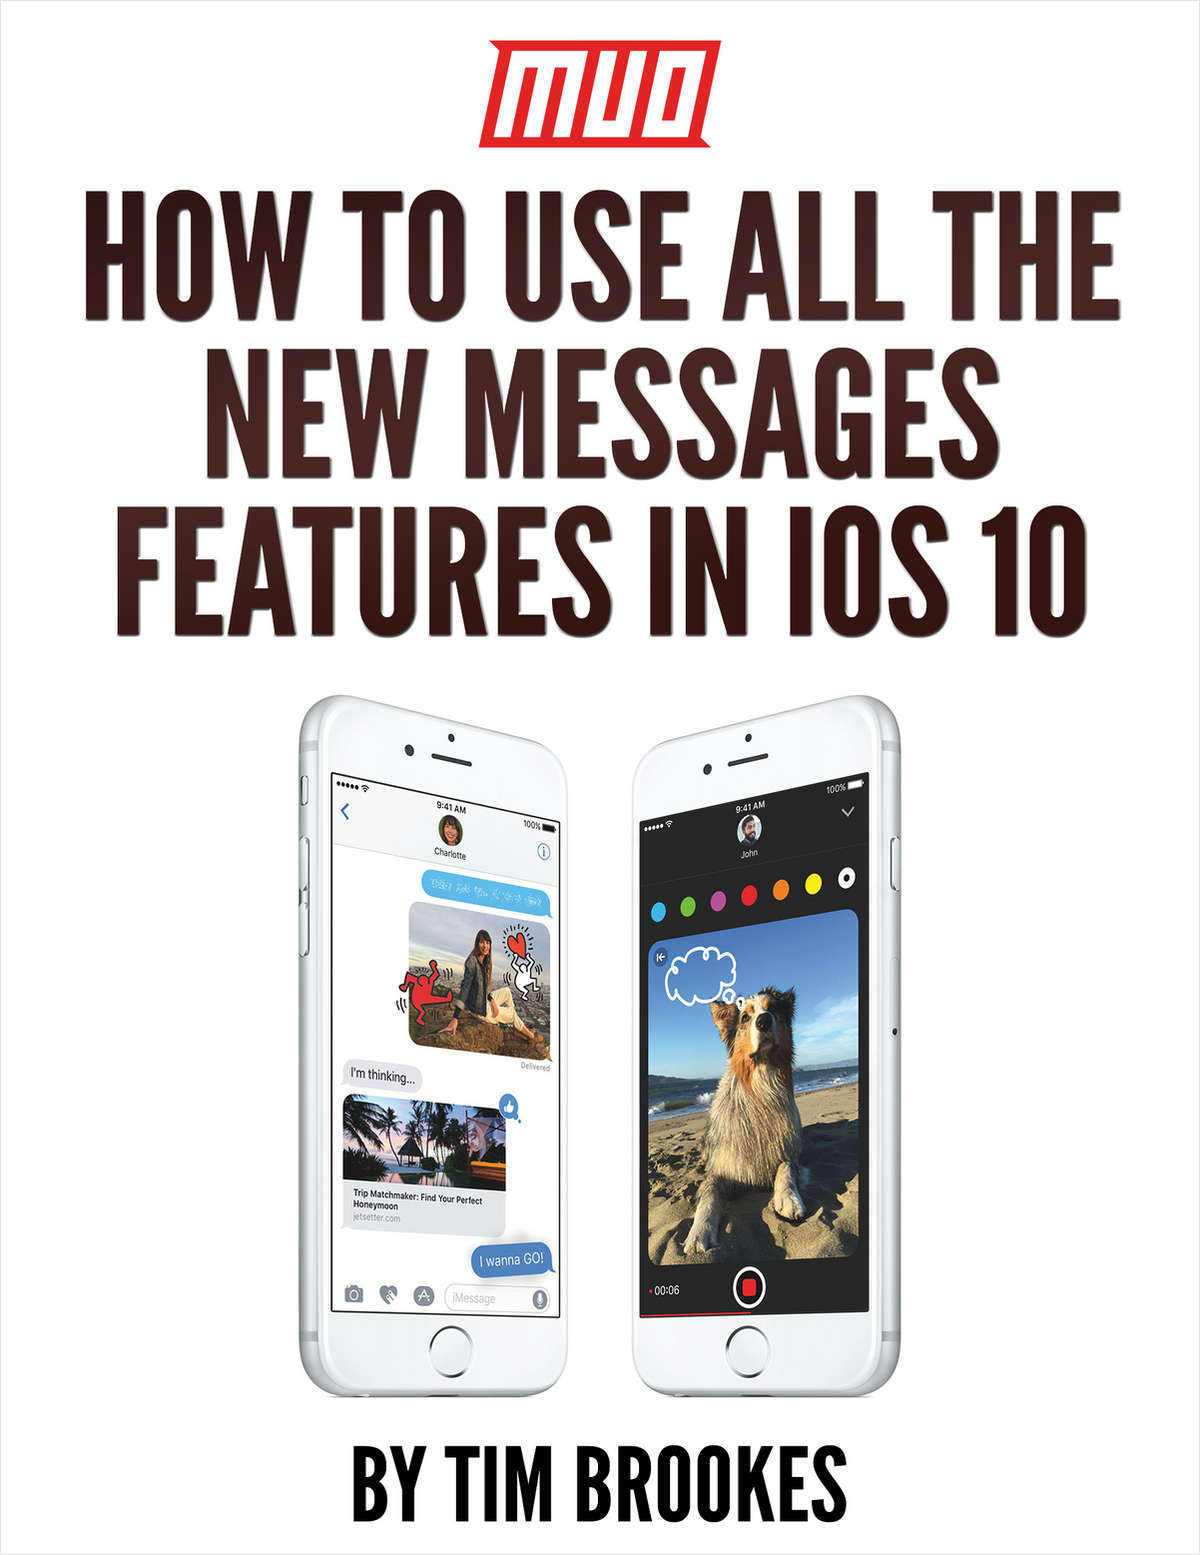 How to Use All the New Messages Features in iOS 10